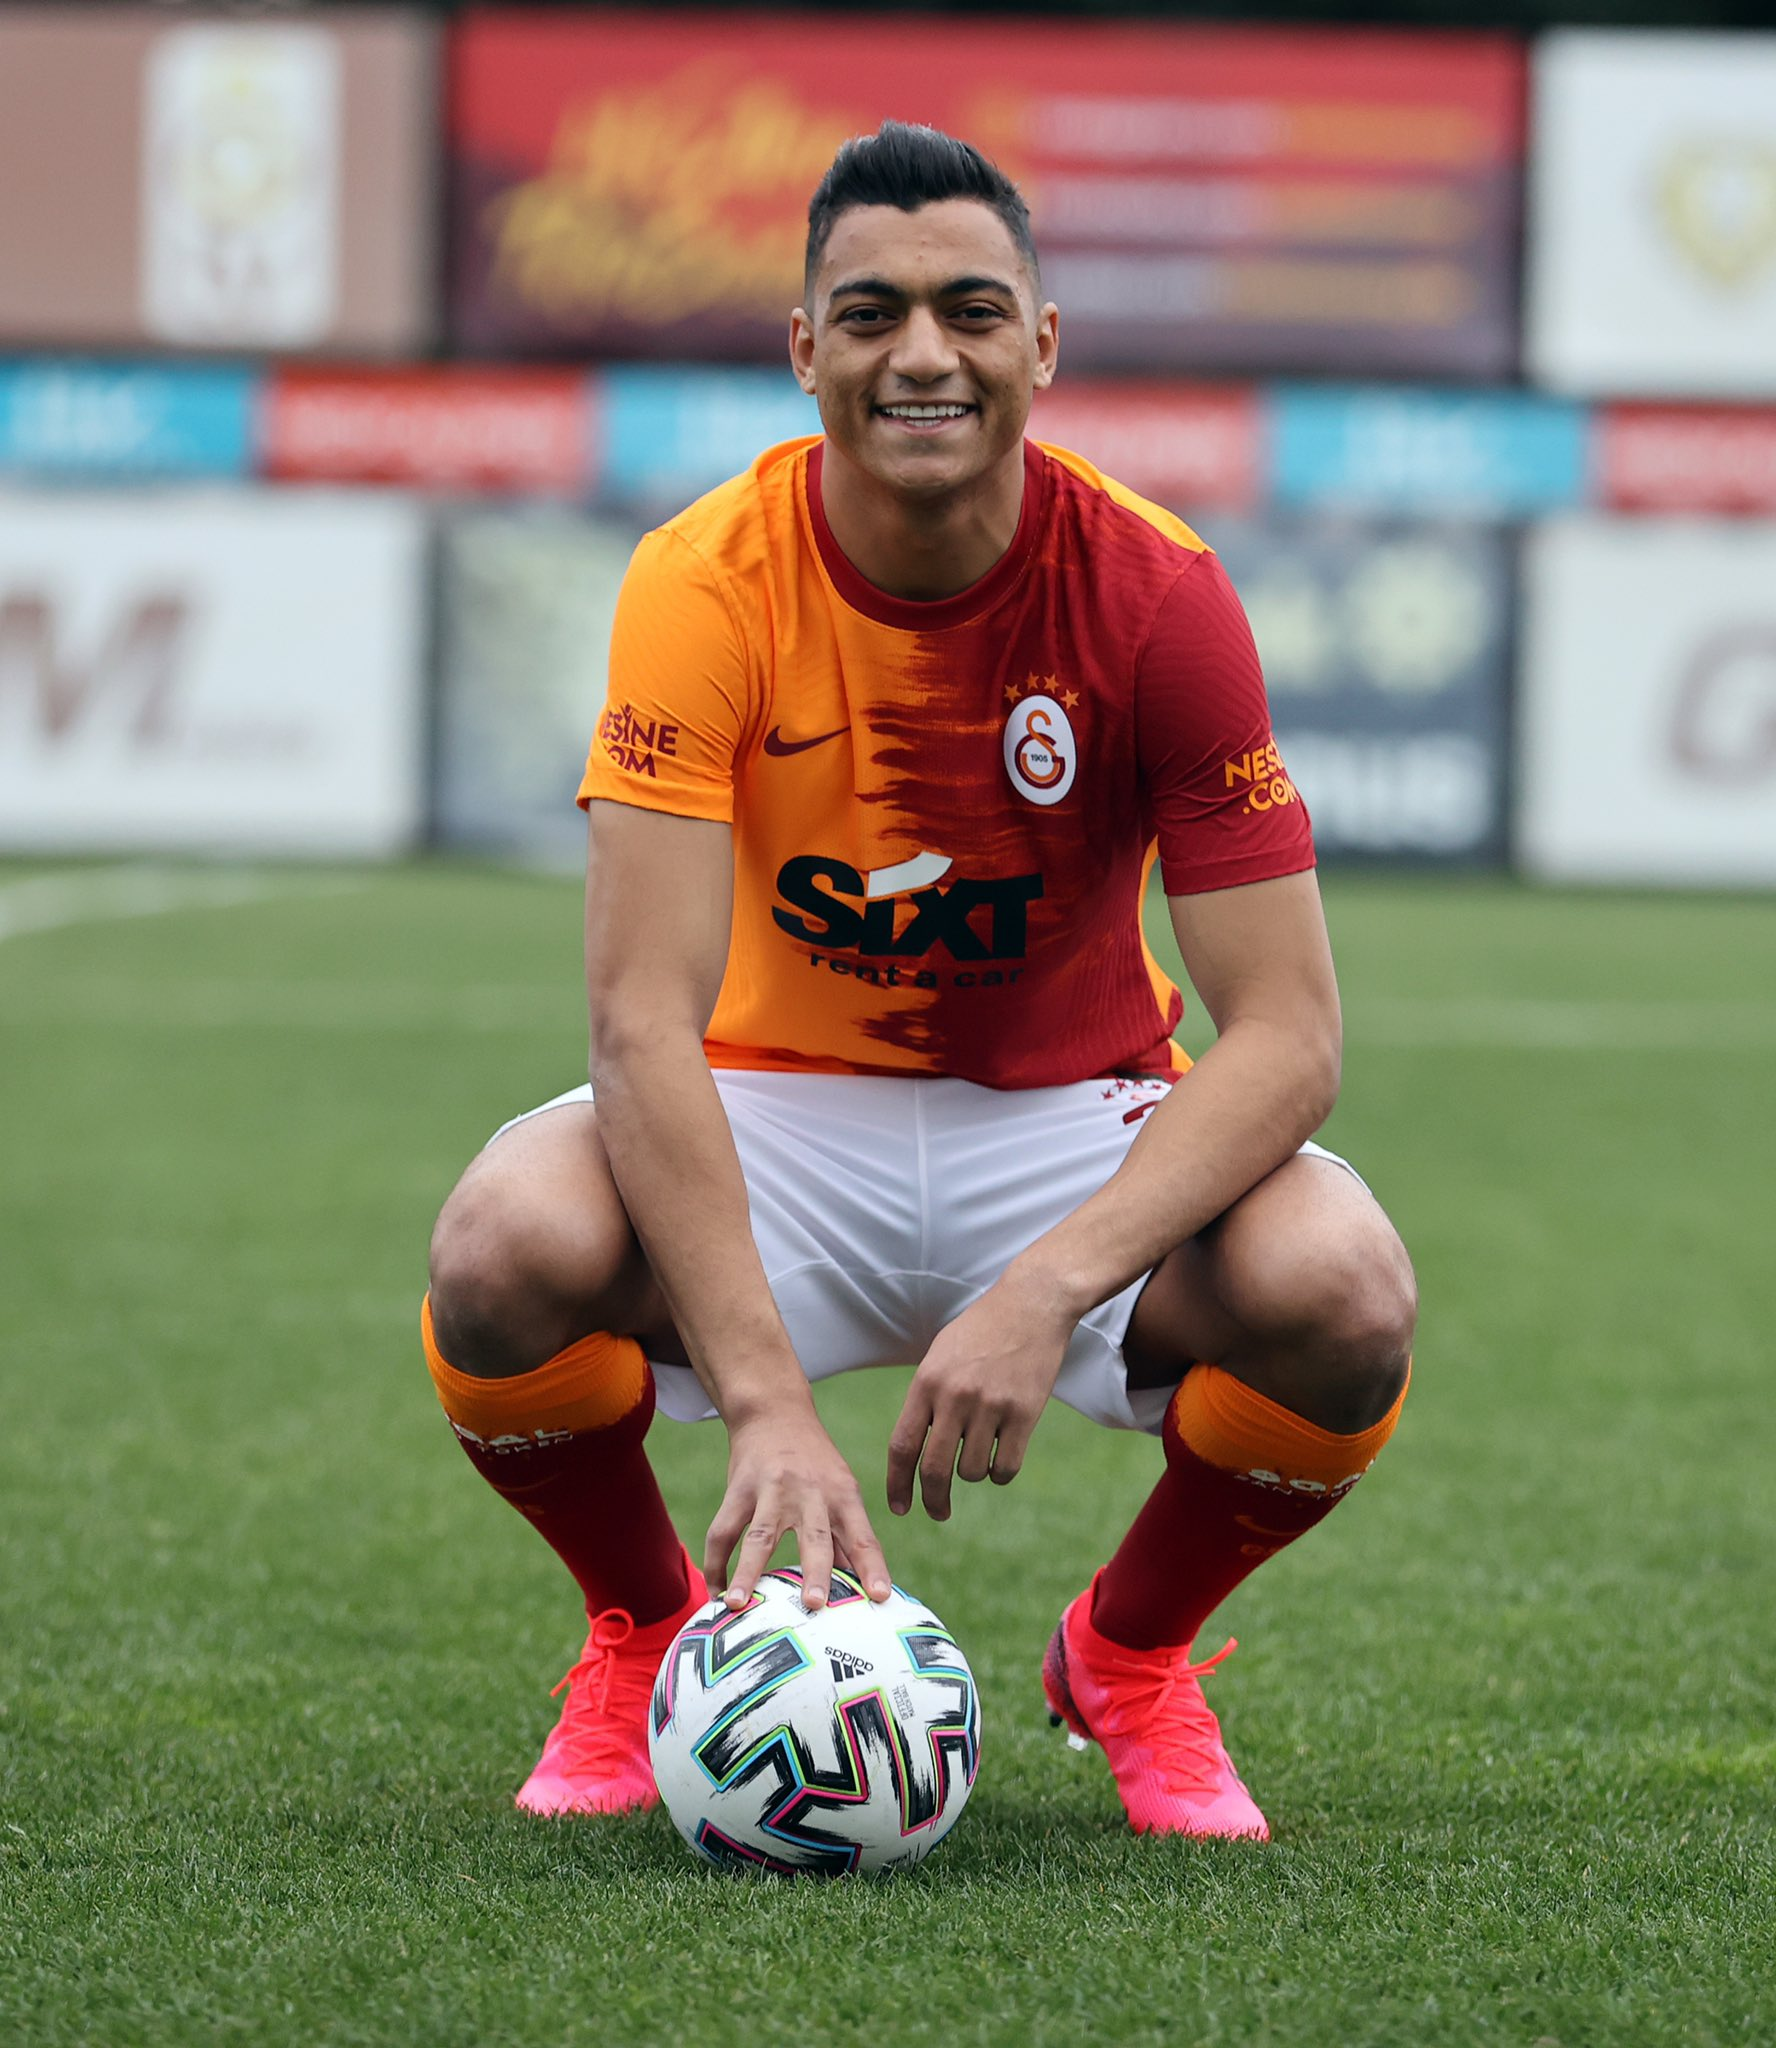 Mustafa Mohamed is a player from Galatasaray